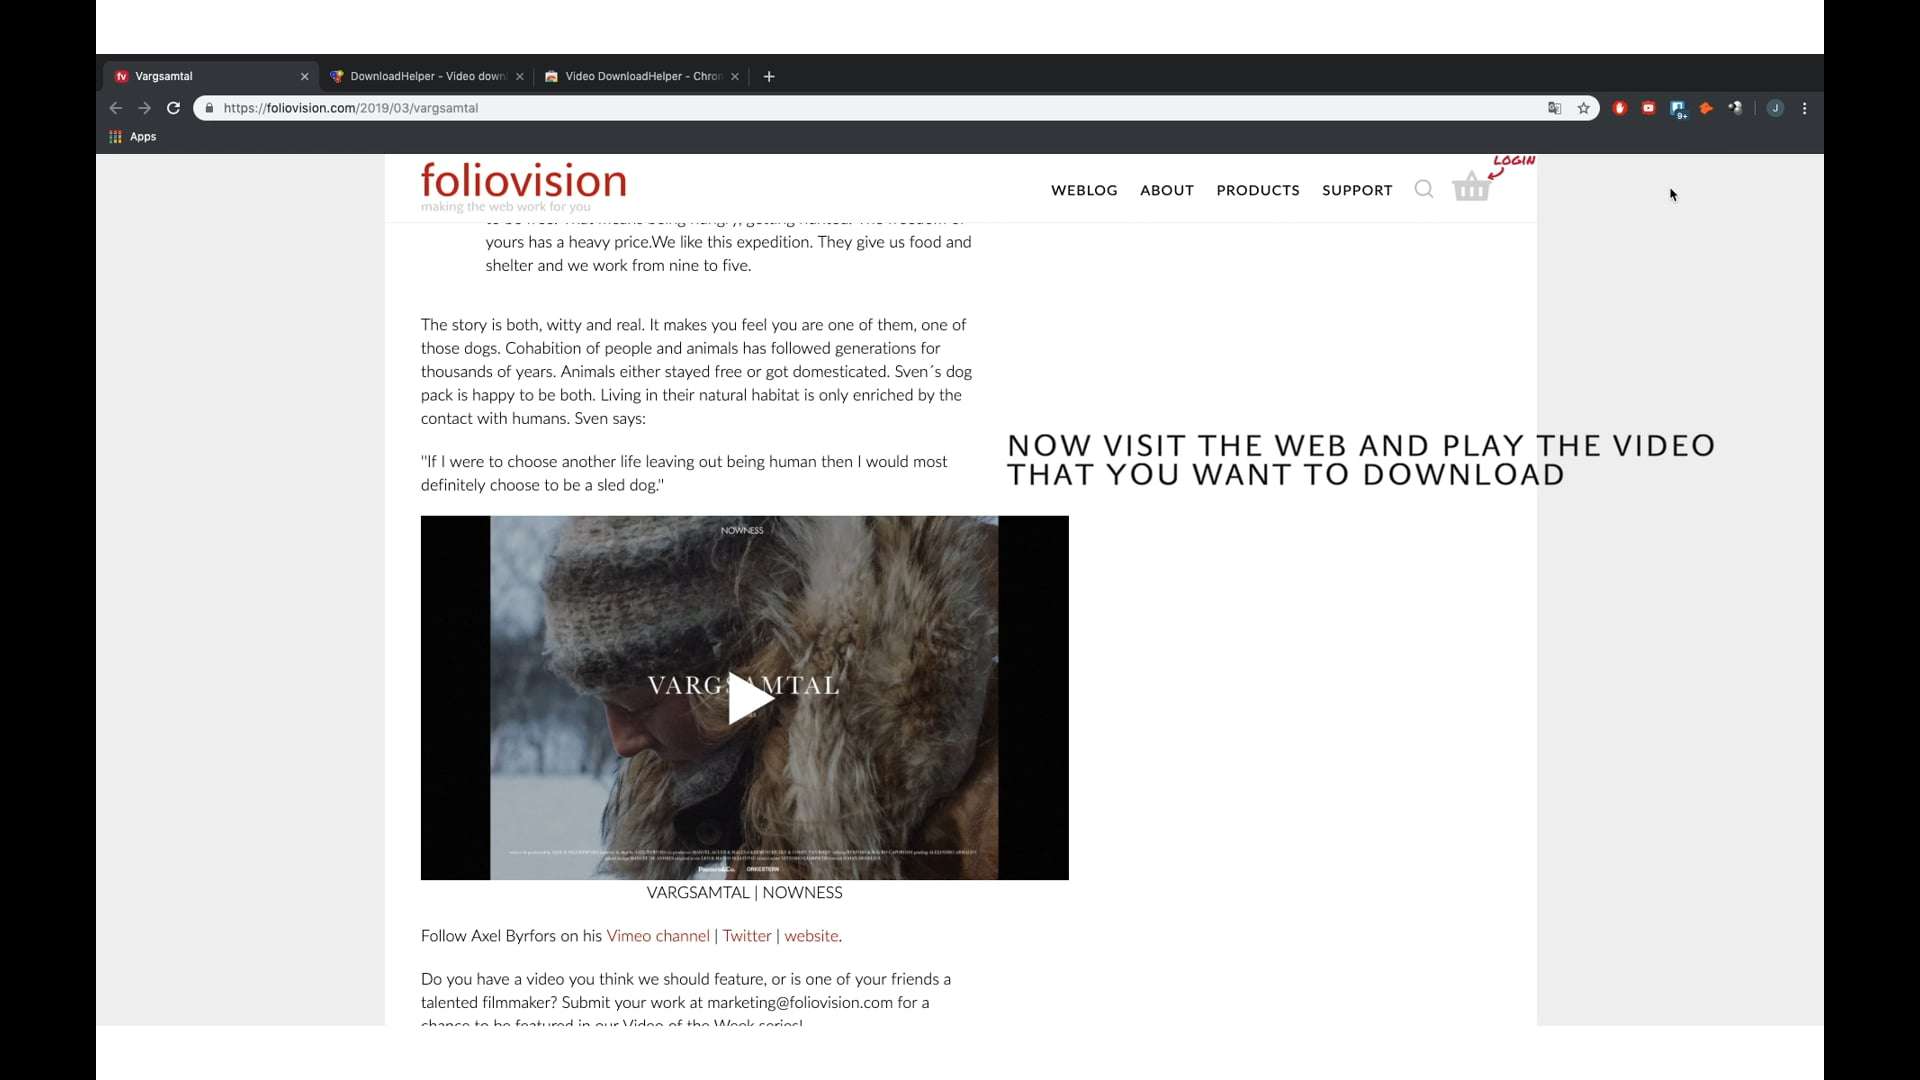 How to download videos with VideoDownloadHelper